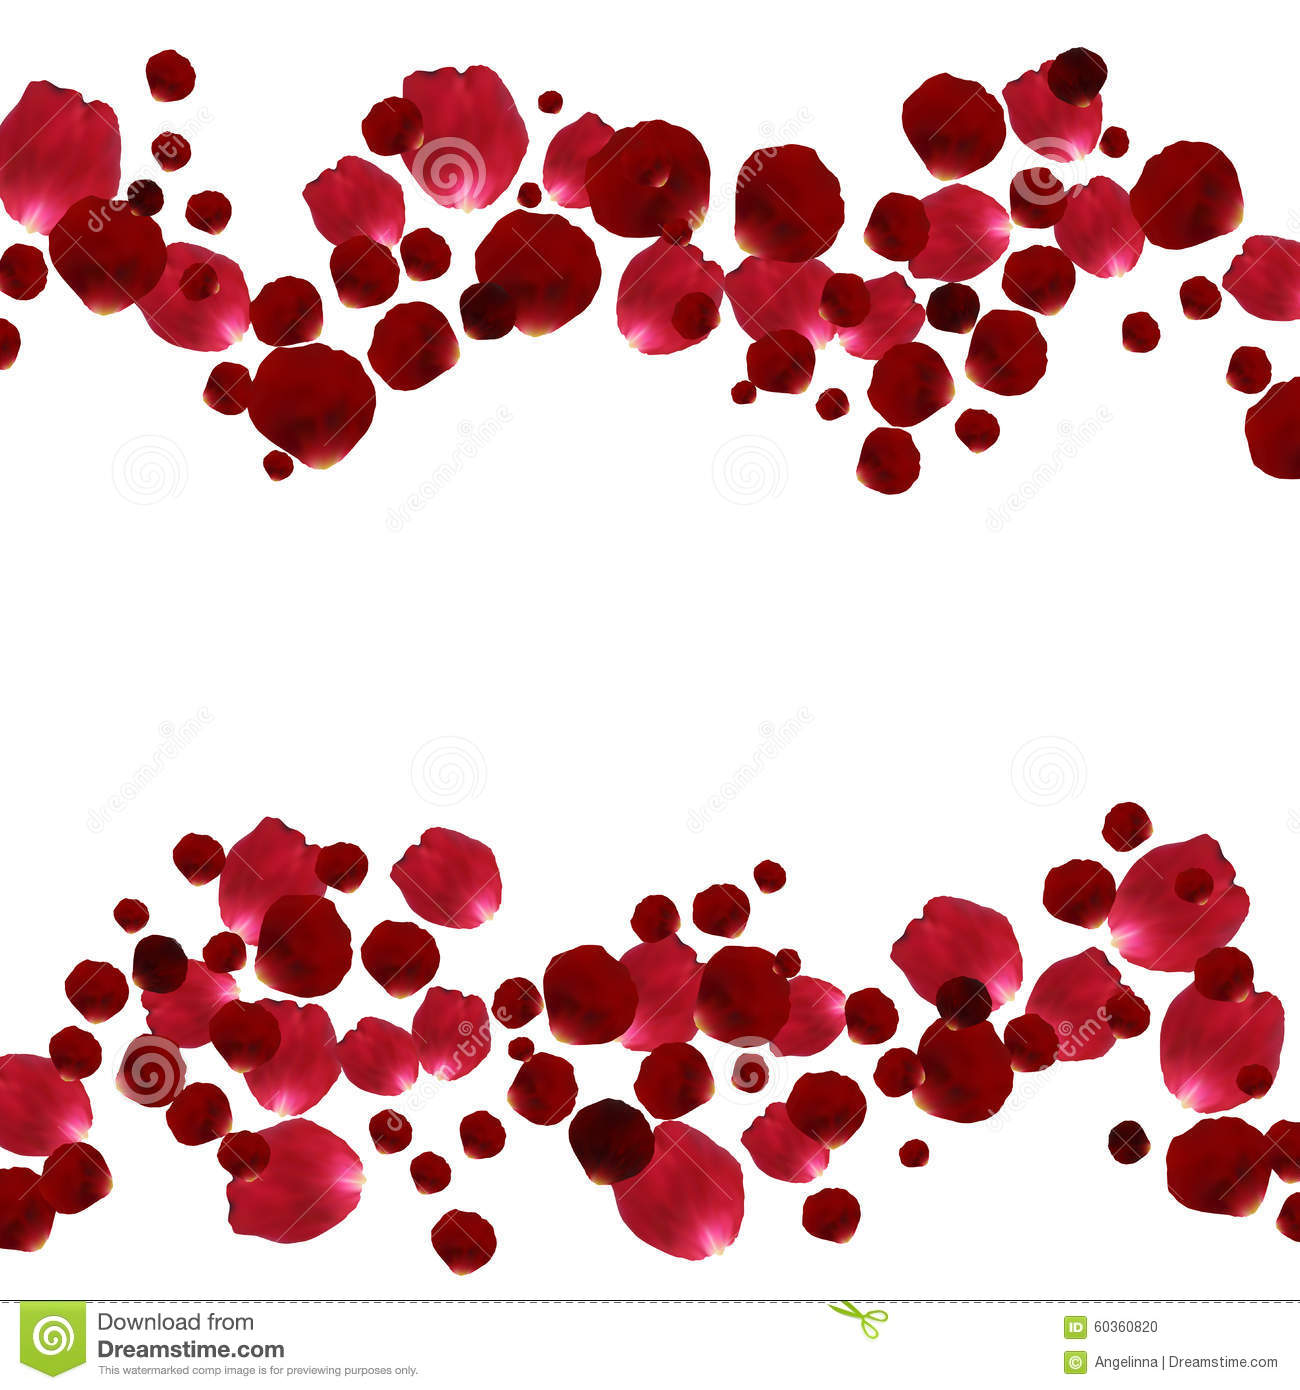 Red and pink rose petals stock vector. Illustration of celebration ...